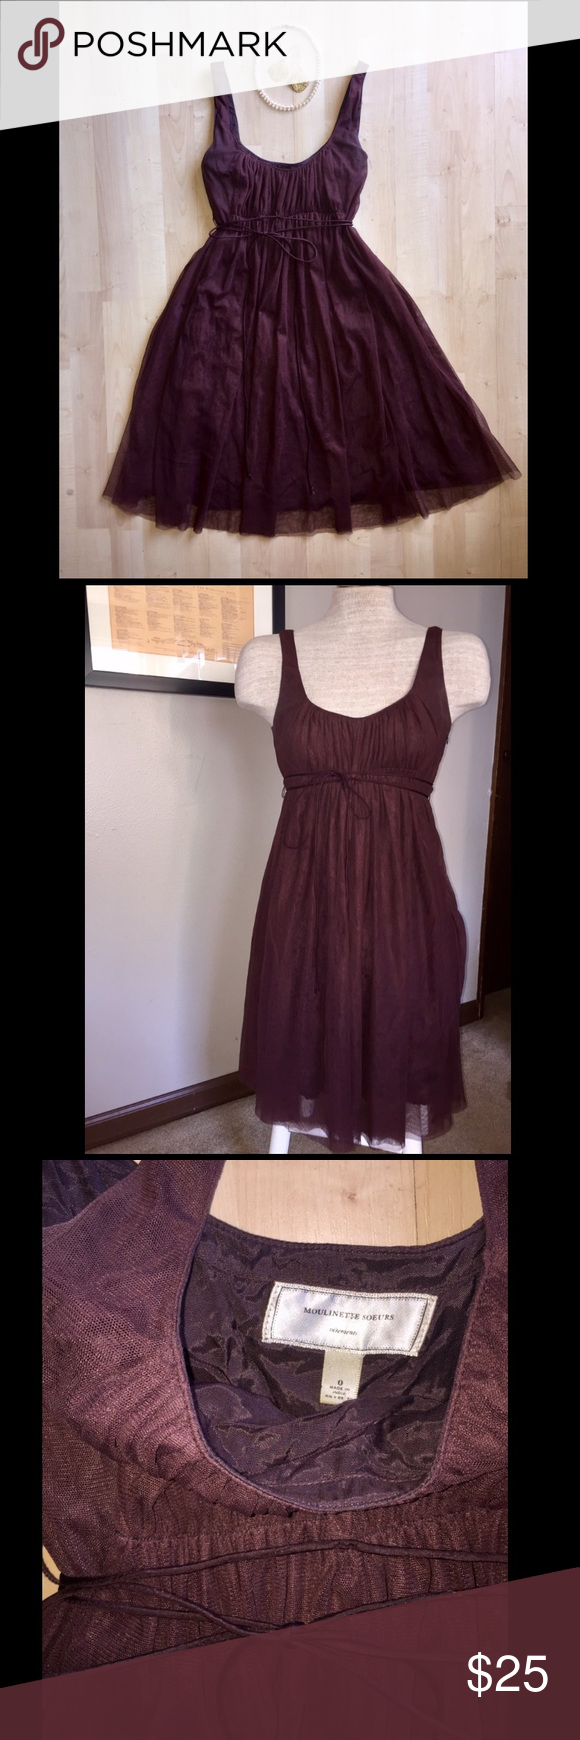 Anthropologie Chocolate Brown Cocktail Dress Lovely chocolate brown ...